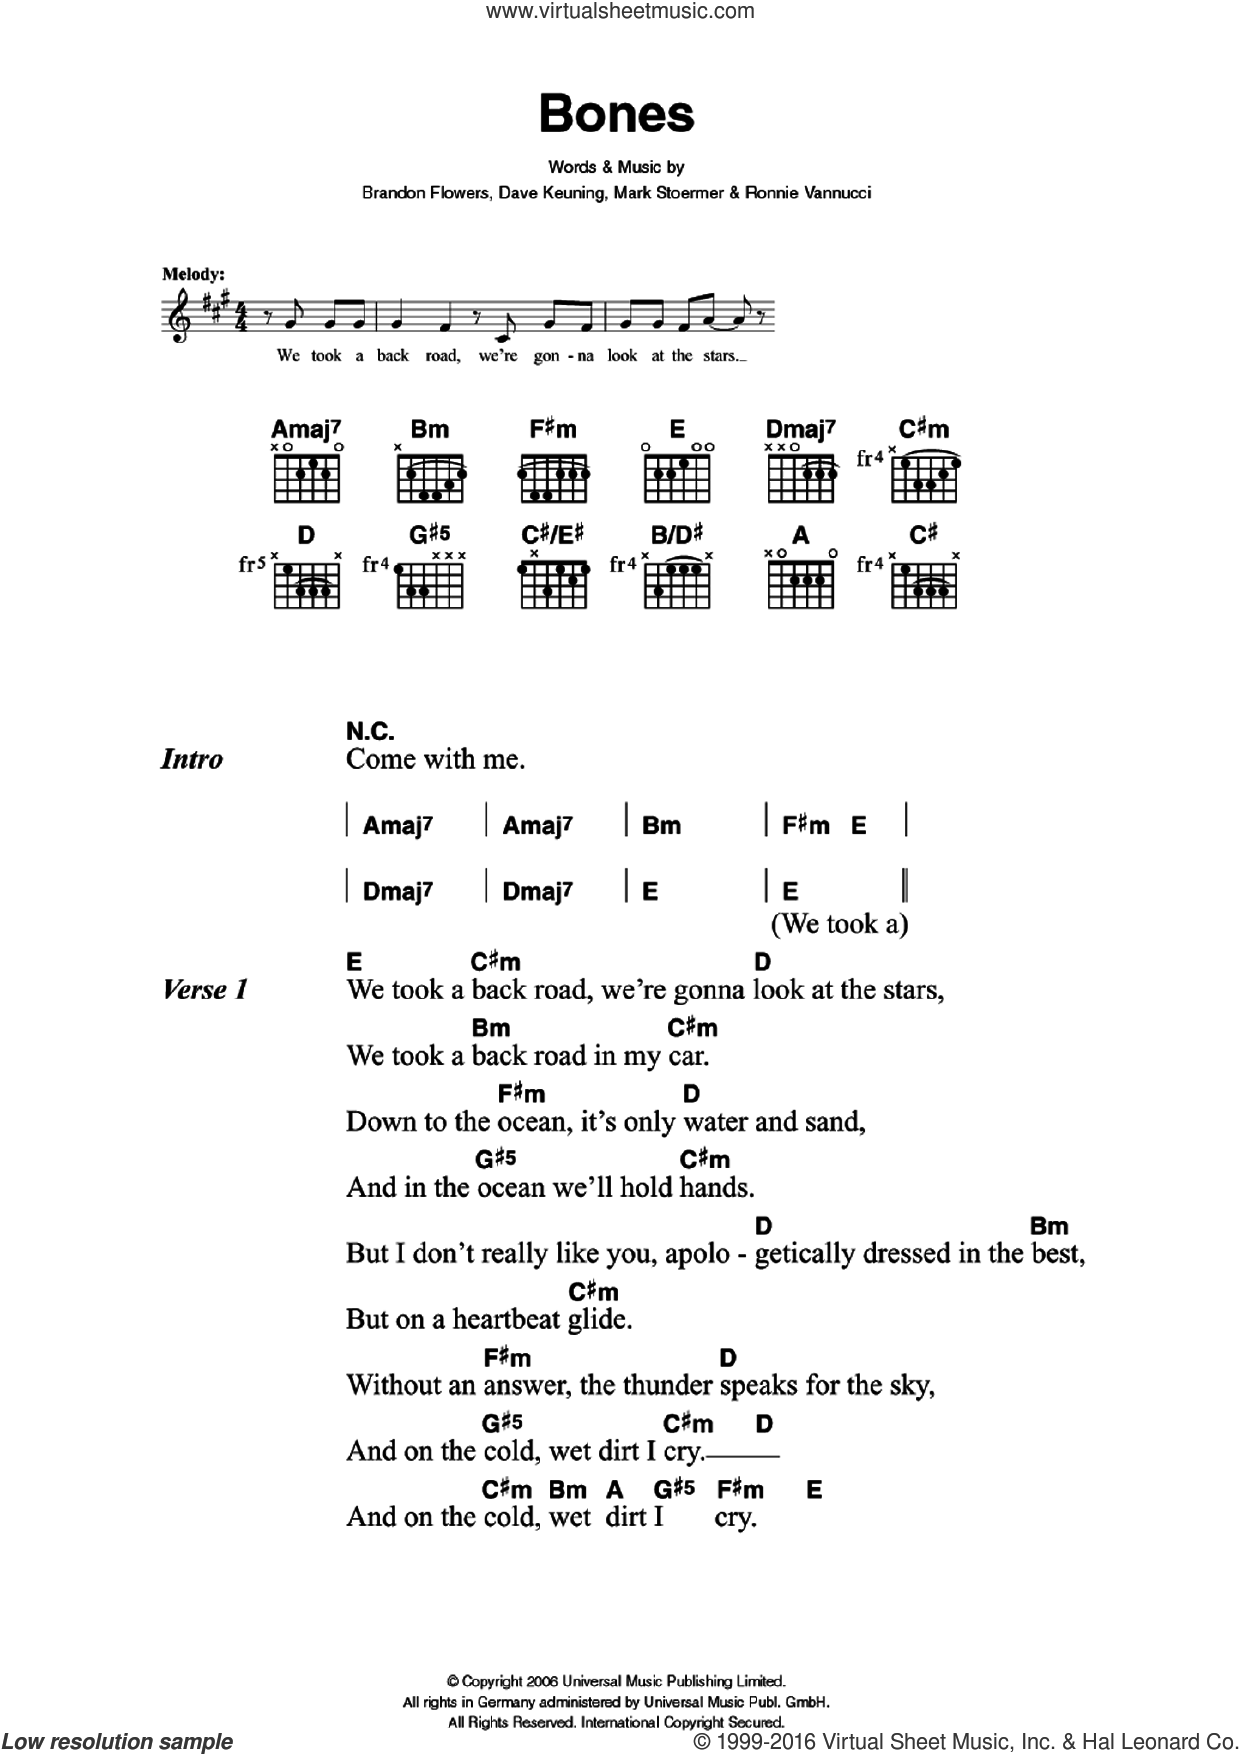 Bones sheet music for guitar (chords) by The Killers, Brandon Flowers, Dave Keuning, Mark Stoermer and Ronnie Vannucci, intermediate